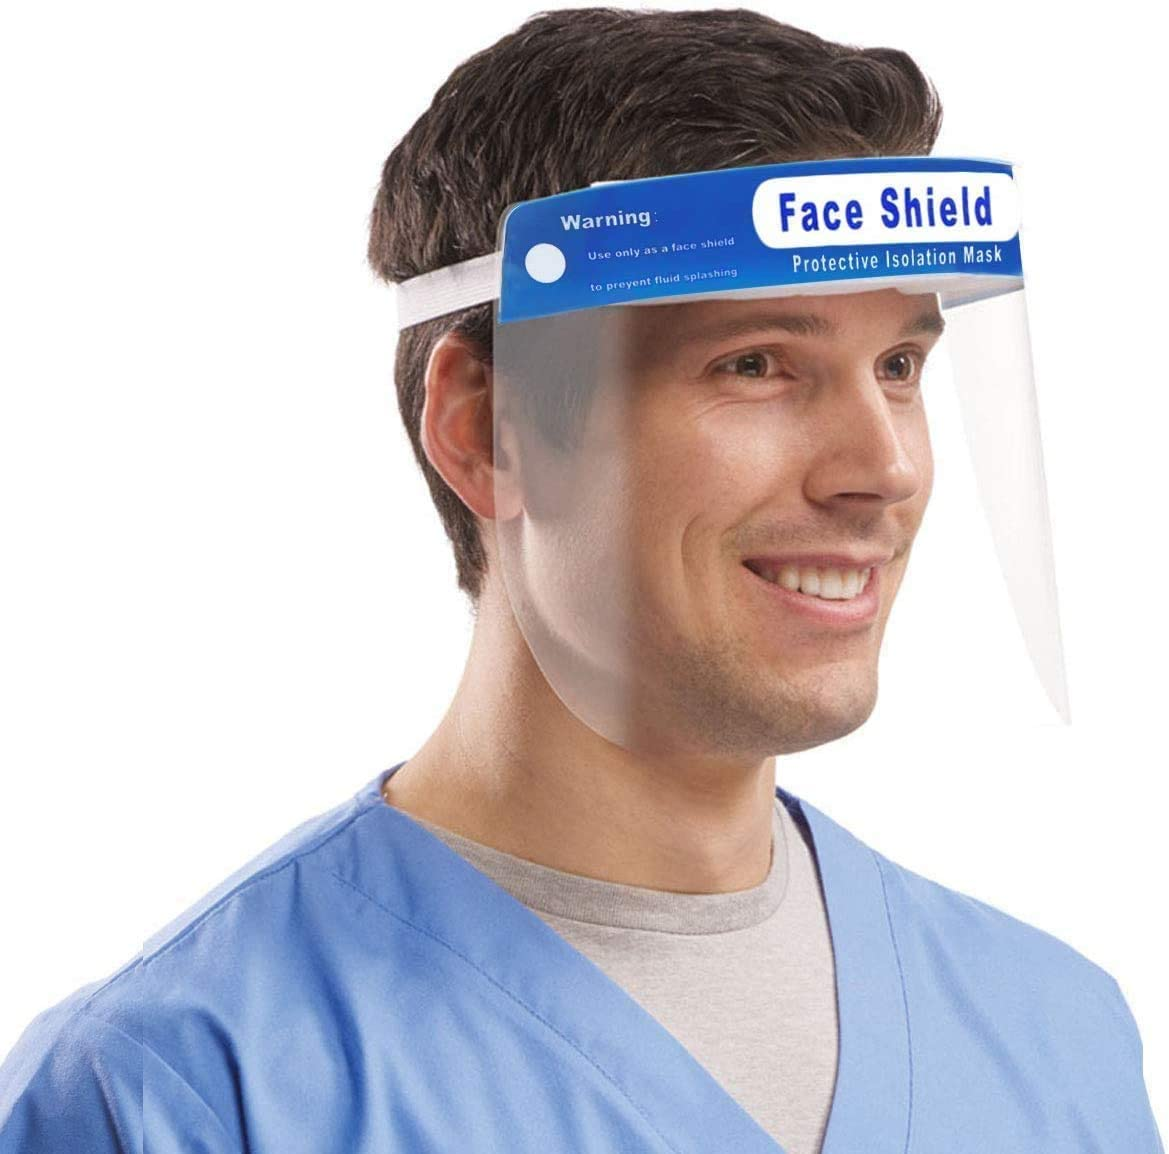 Safety Face Shield [10 Pack] Adjustable Elastic strip, Transparent Full Face Protective Visor with Eye & Head Protection, Anti-Splash Facial Cover for Women Men